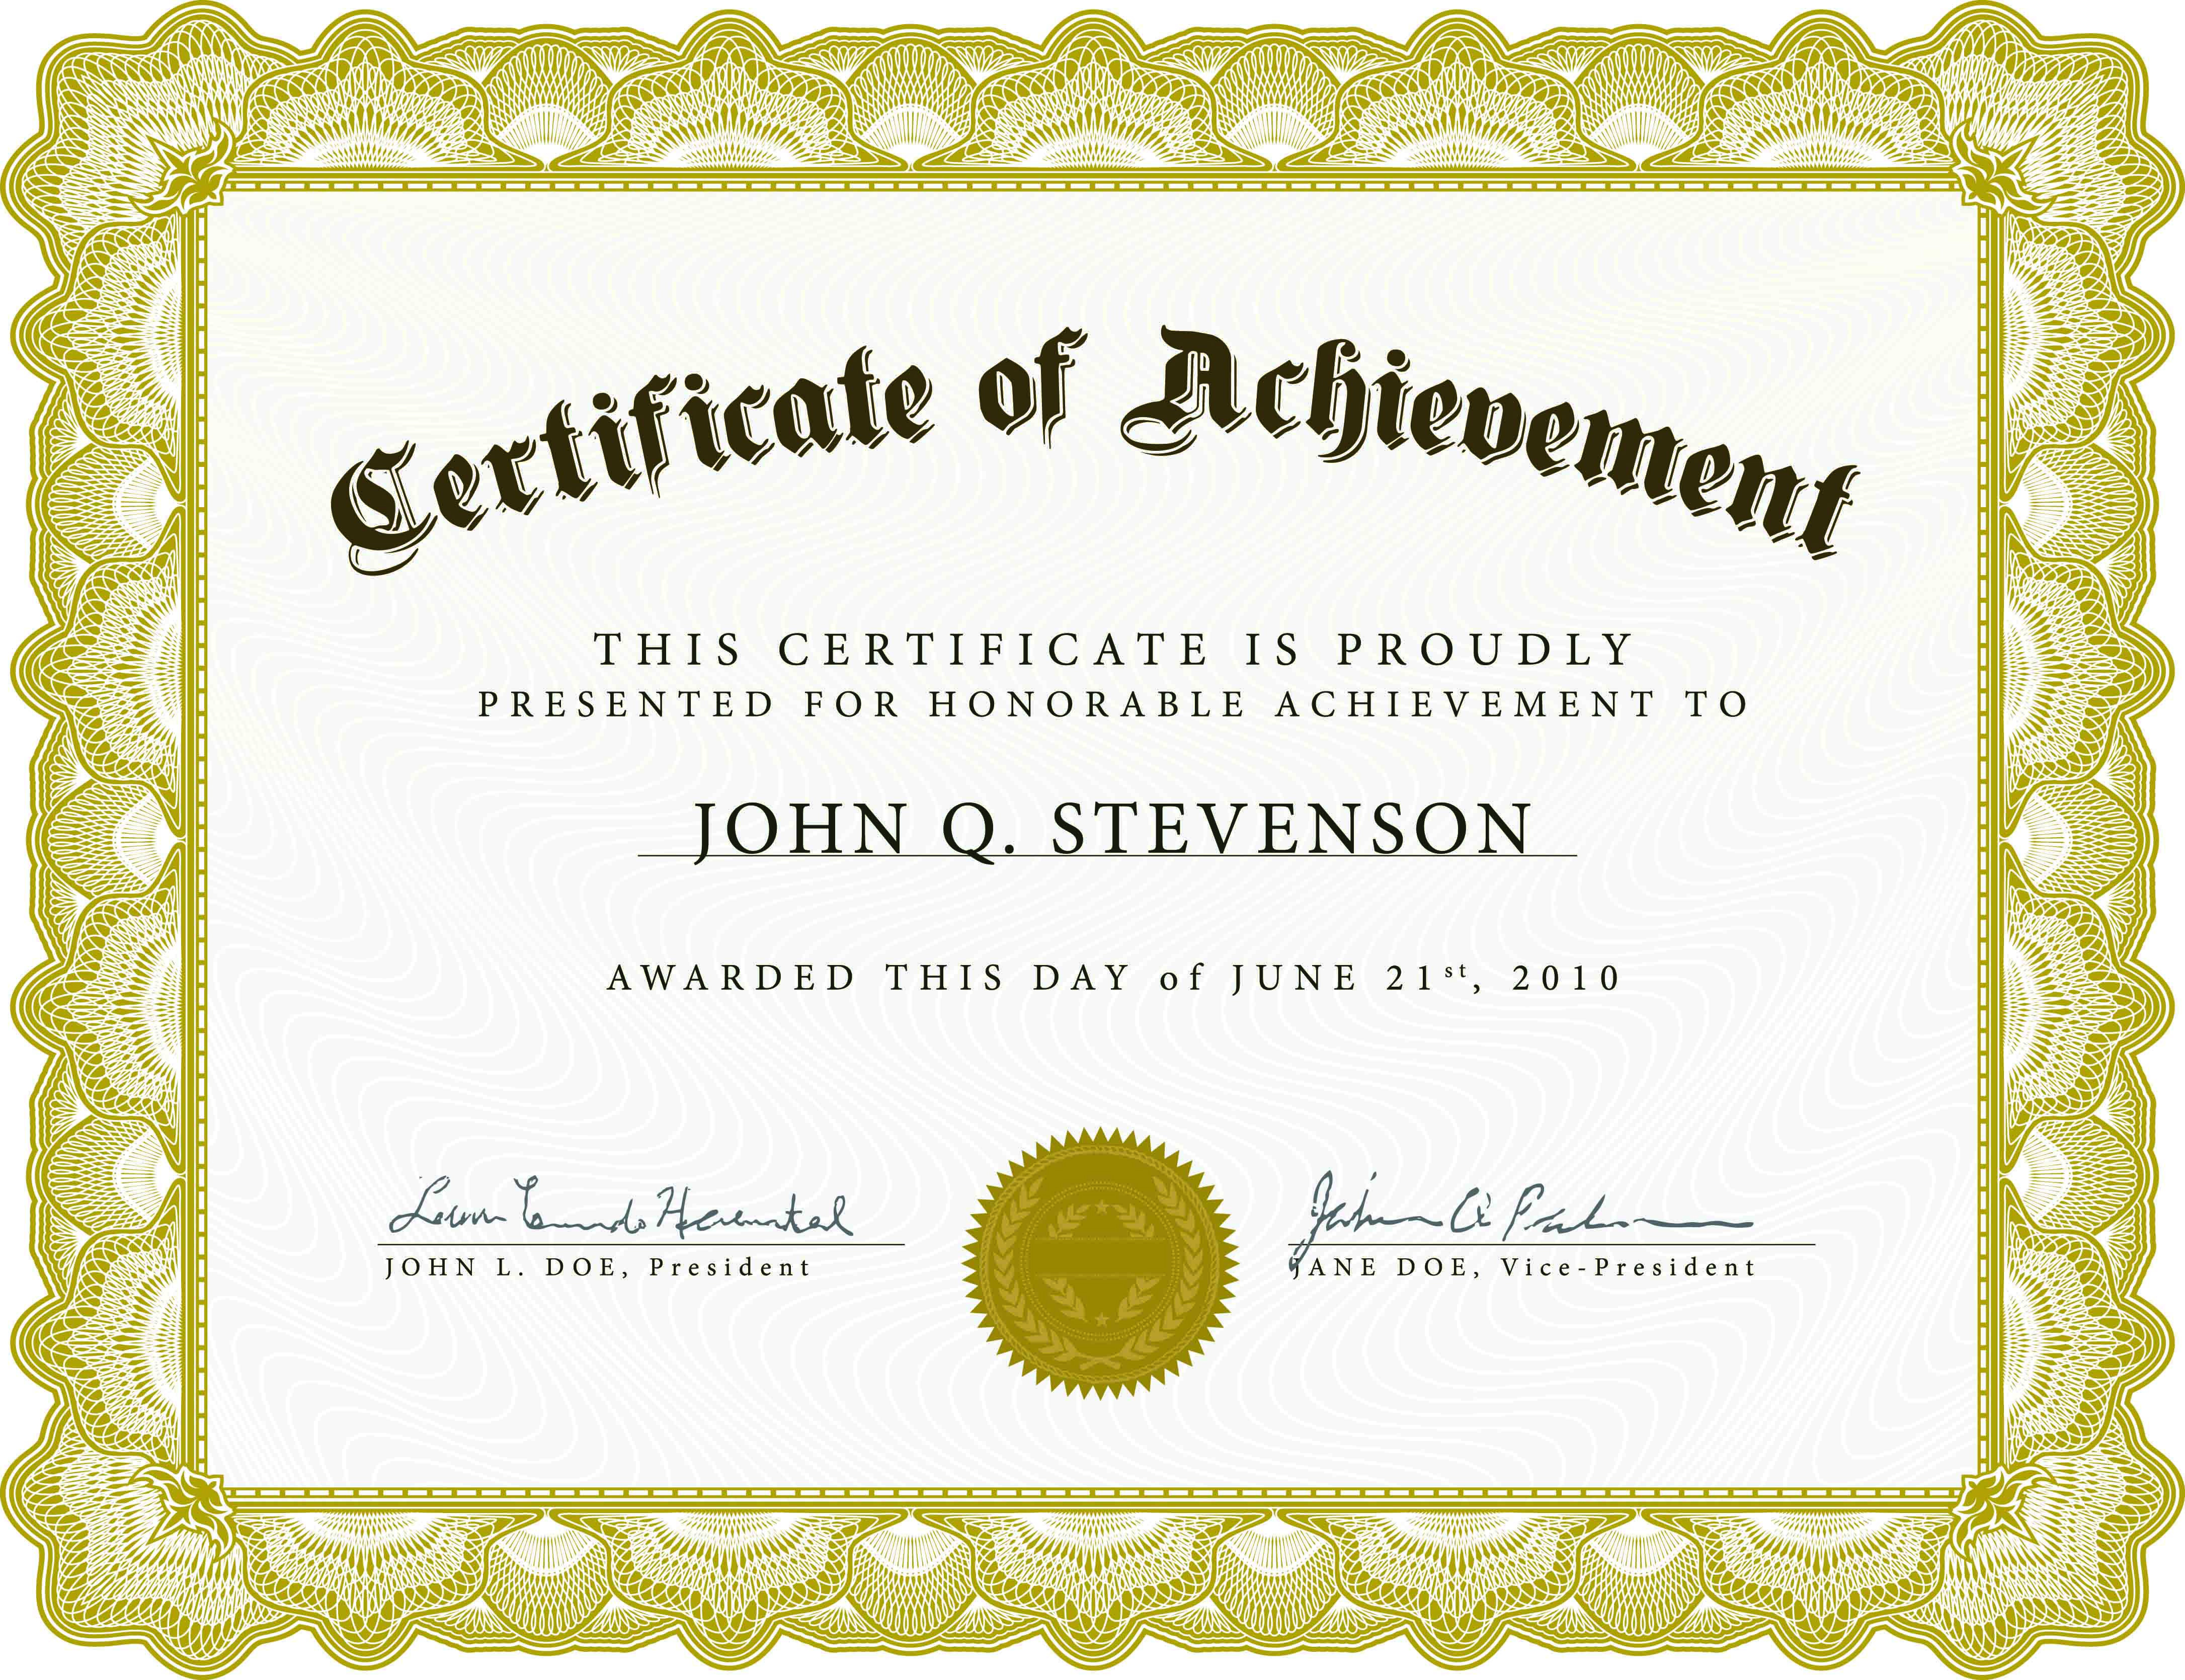 Download Blank Certificate Template X3Hr9Dto | St. Gabriel's Youth - Free Printable Award Certificates